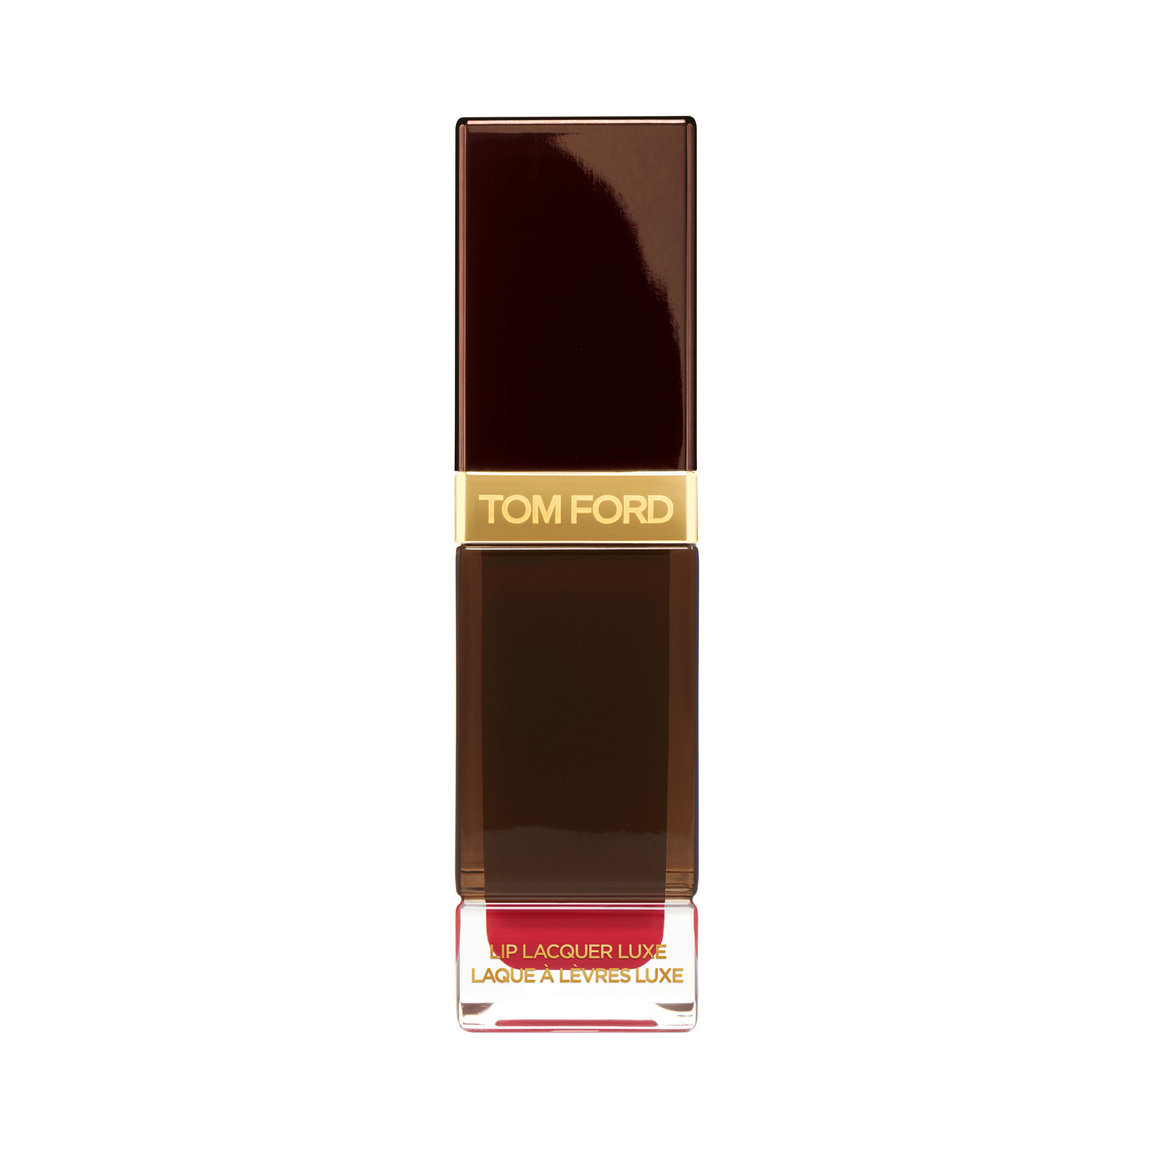 TOM FORD Lip Lacquer Luxe Matte Overpower product smear.